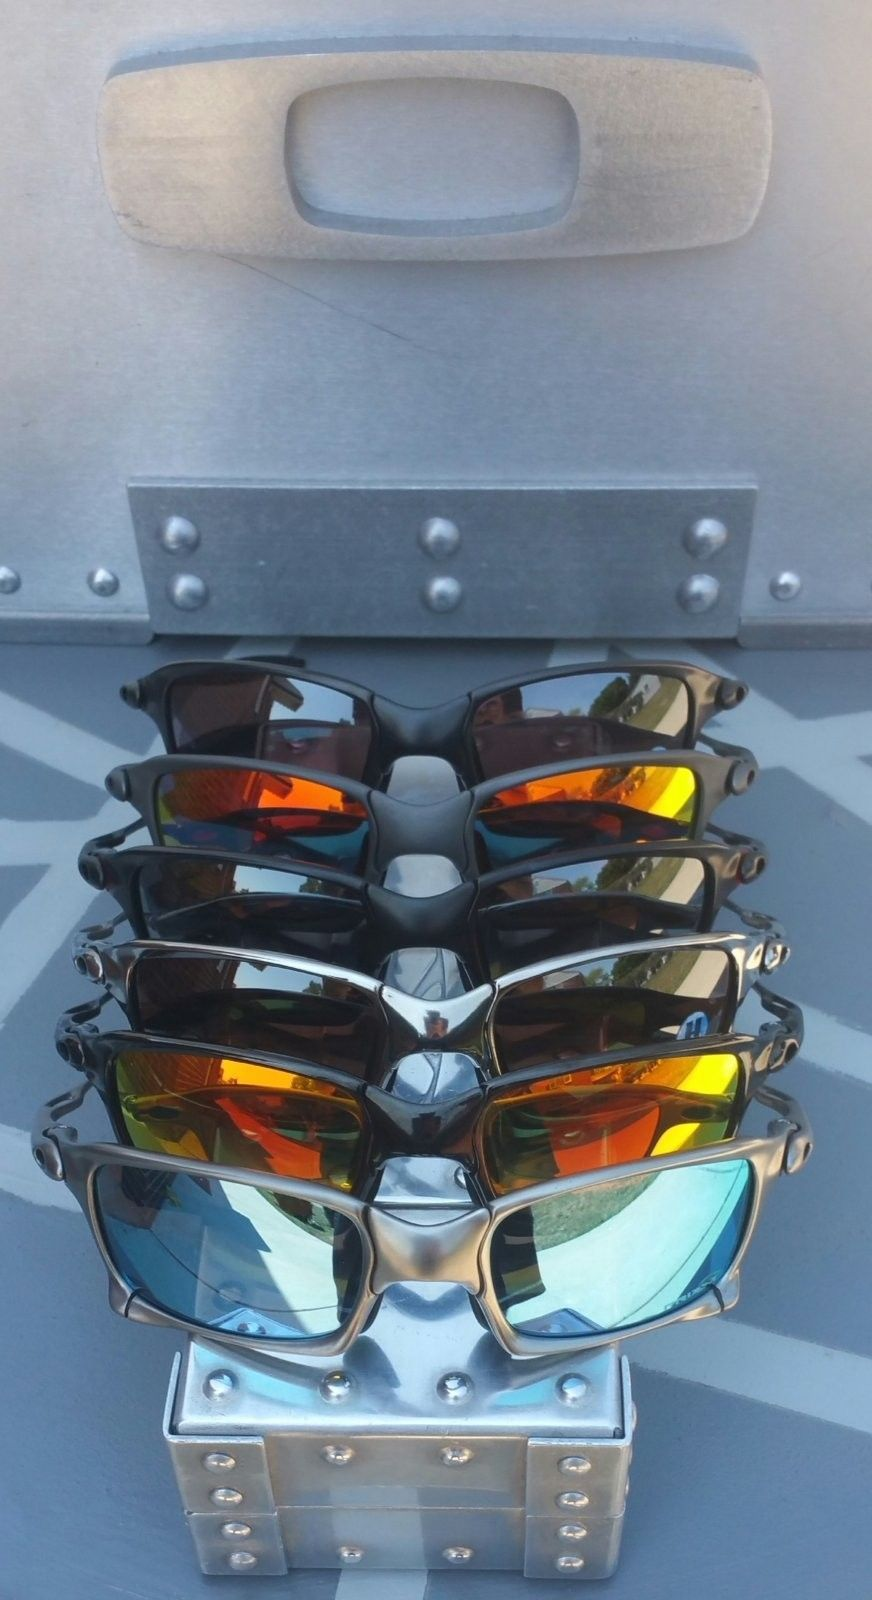 Plasma XS with DWP etched prizm lenses - 2016-07-20 14.15.05.jpg